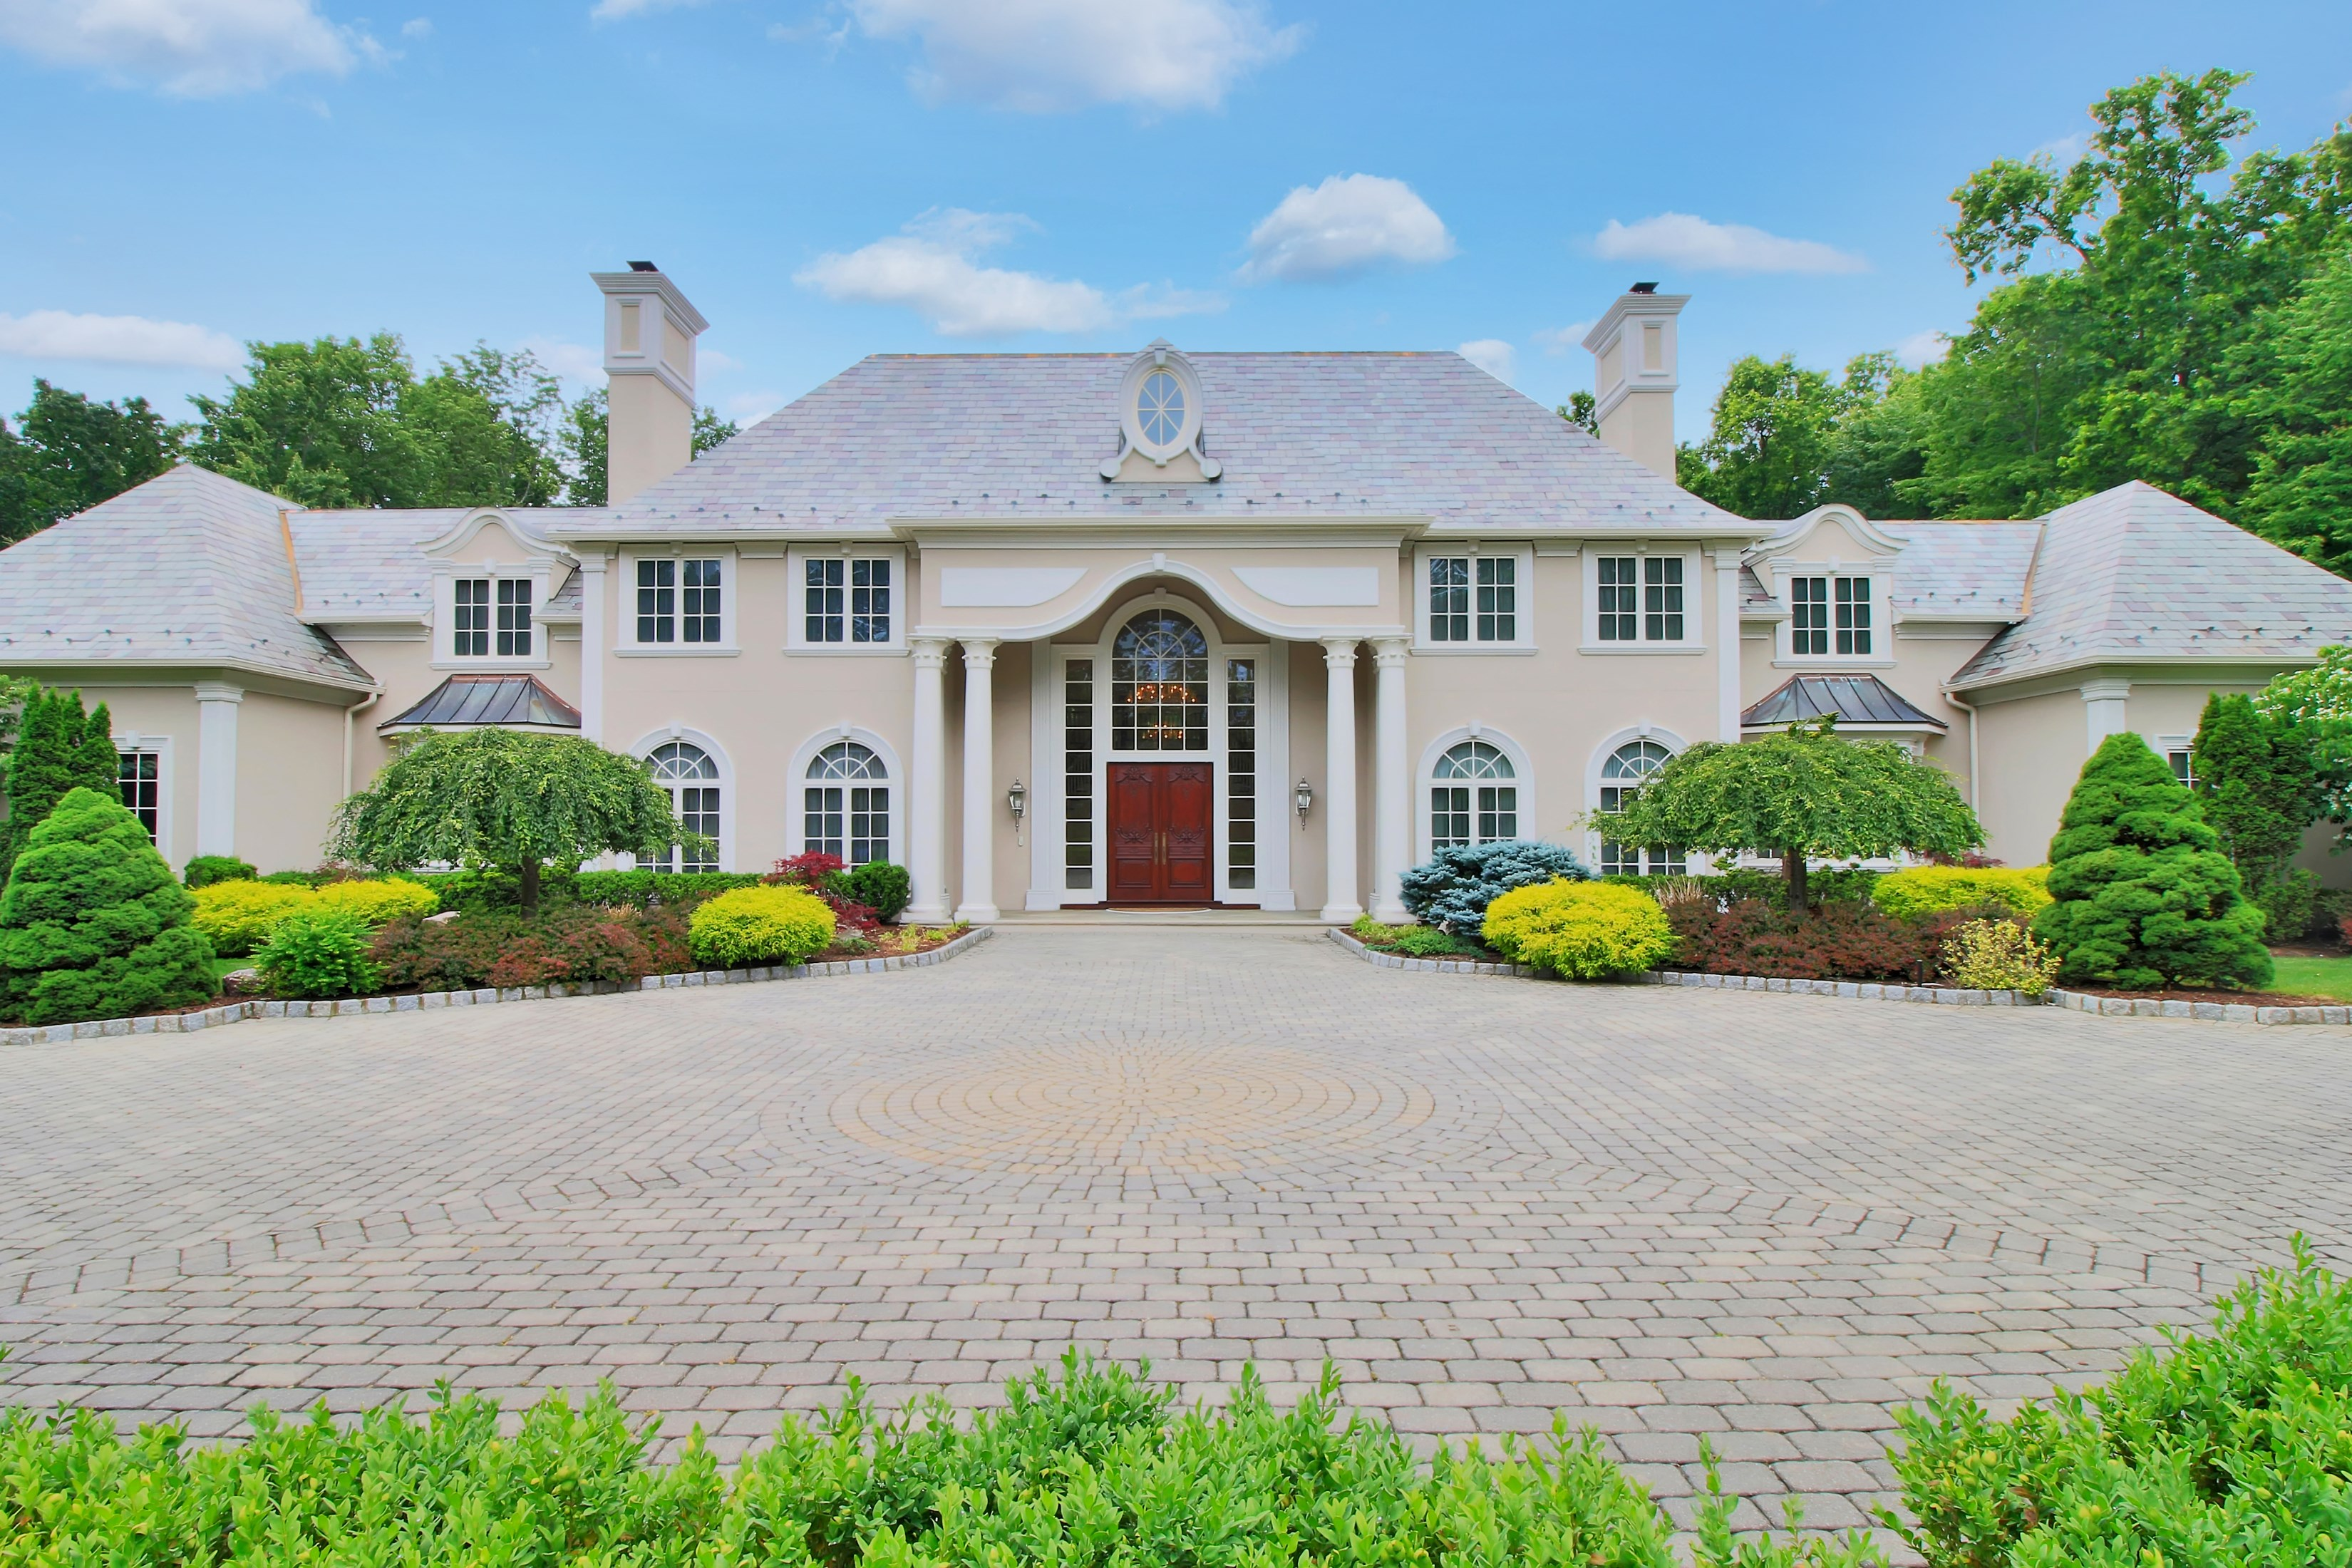 Single Family Home for Sale at Breathtaking! 33 Cameron Road Saddle River, 07458 United States